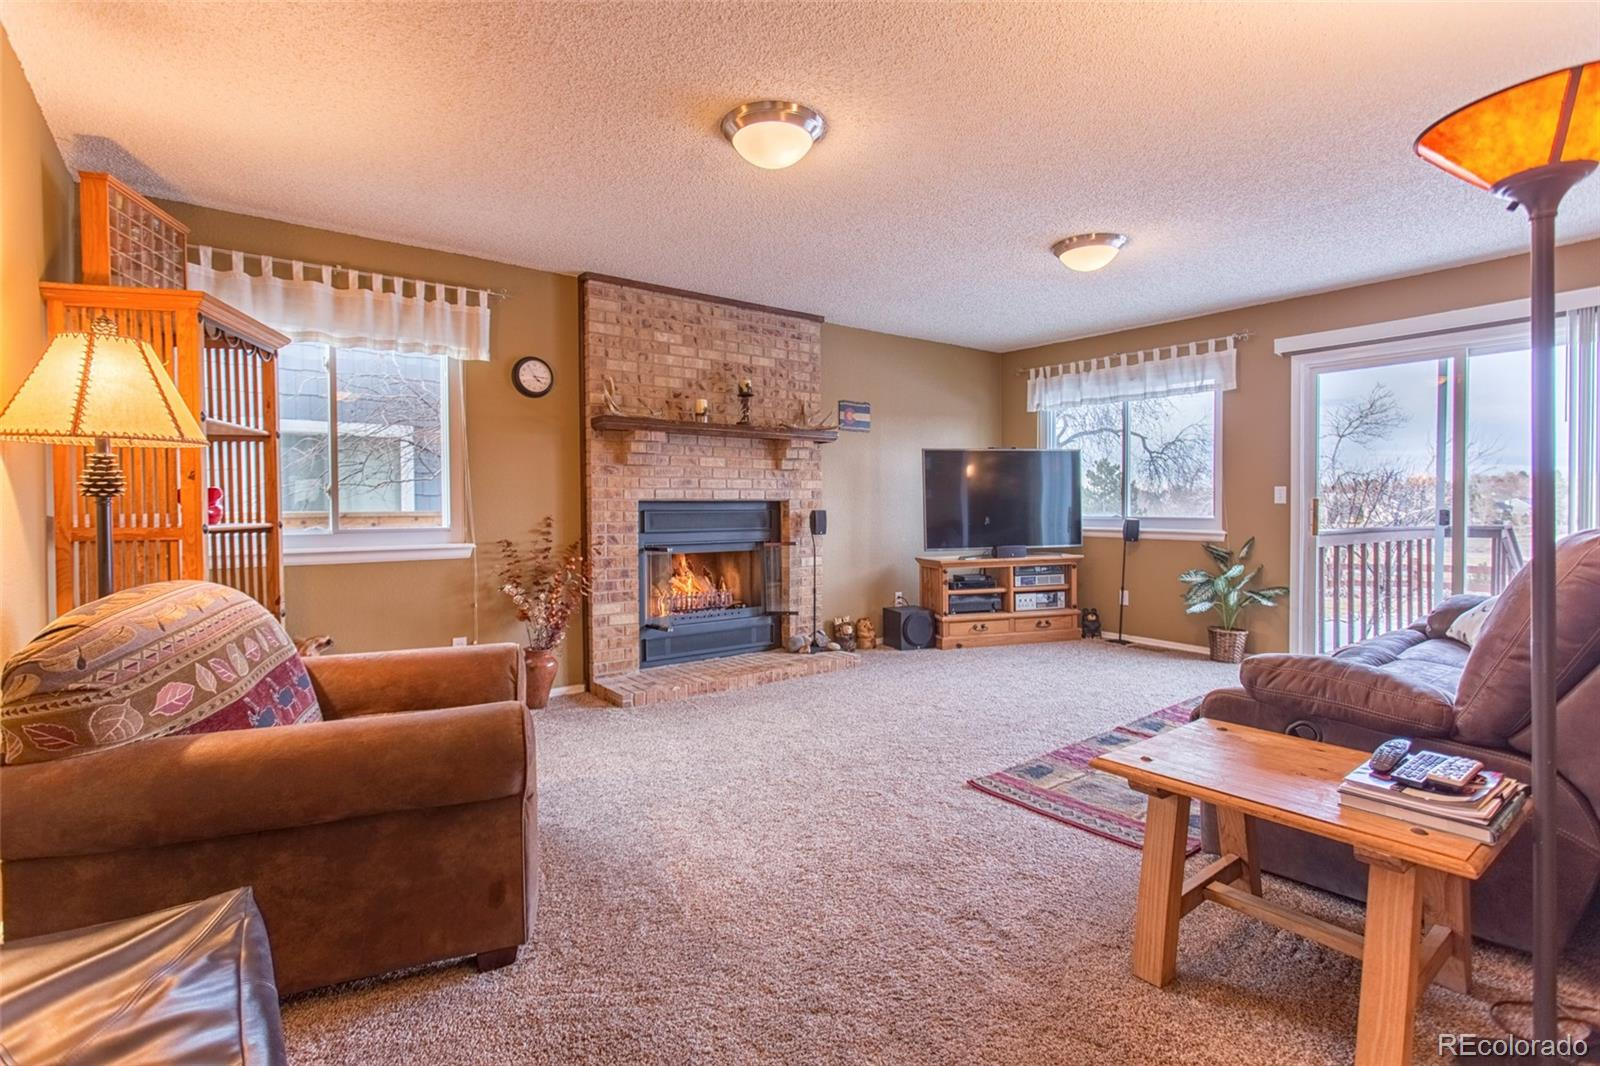 MLS# 8627962 - 8 - 431 Snowy Owl Place, Highlands Ranch, CO 80126